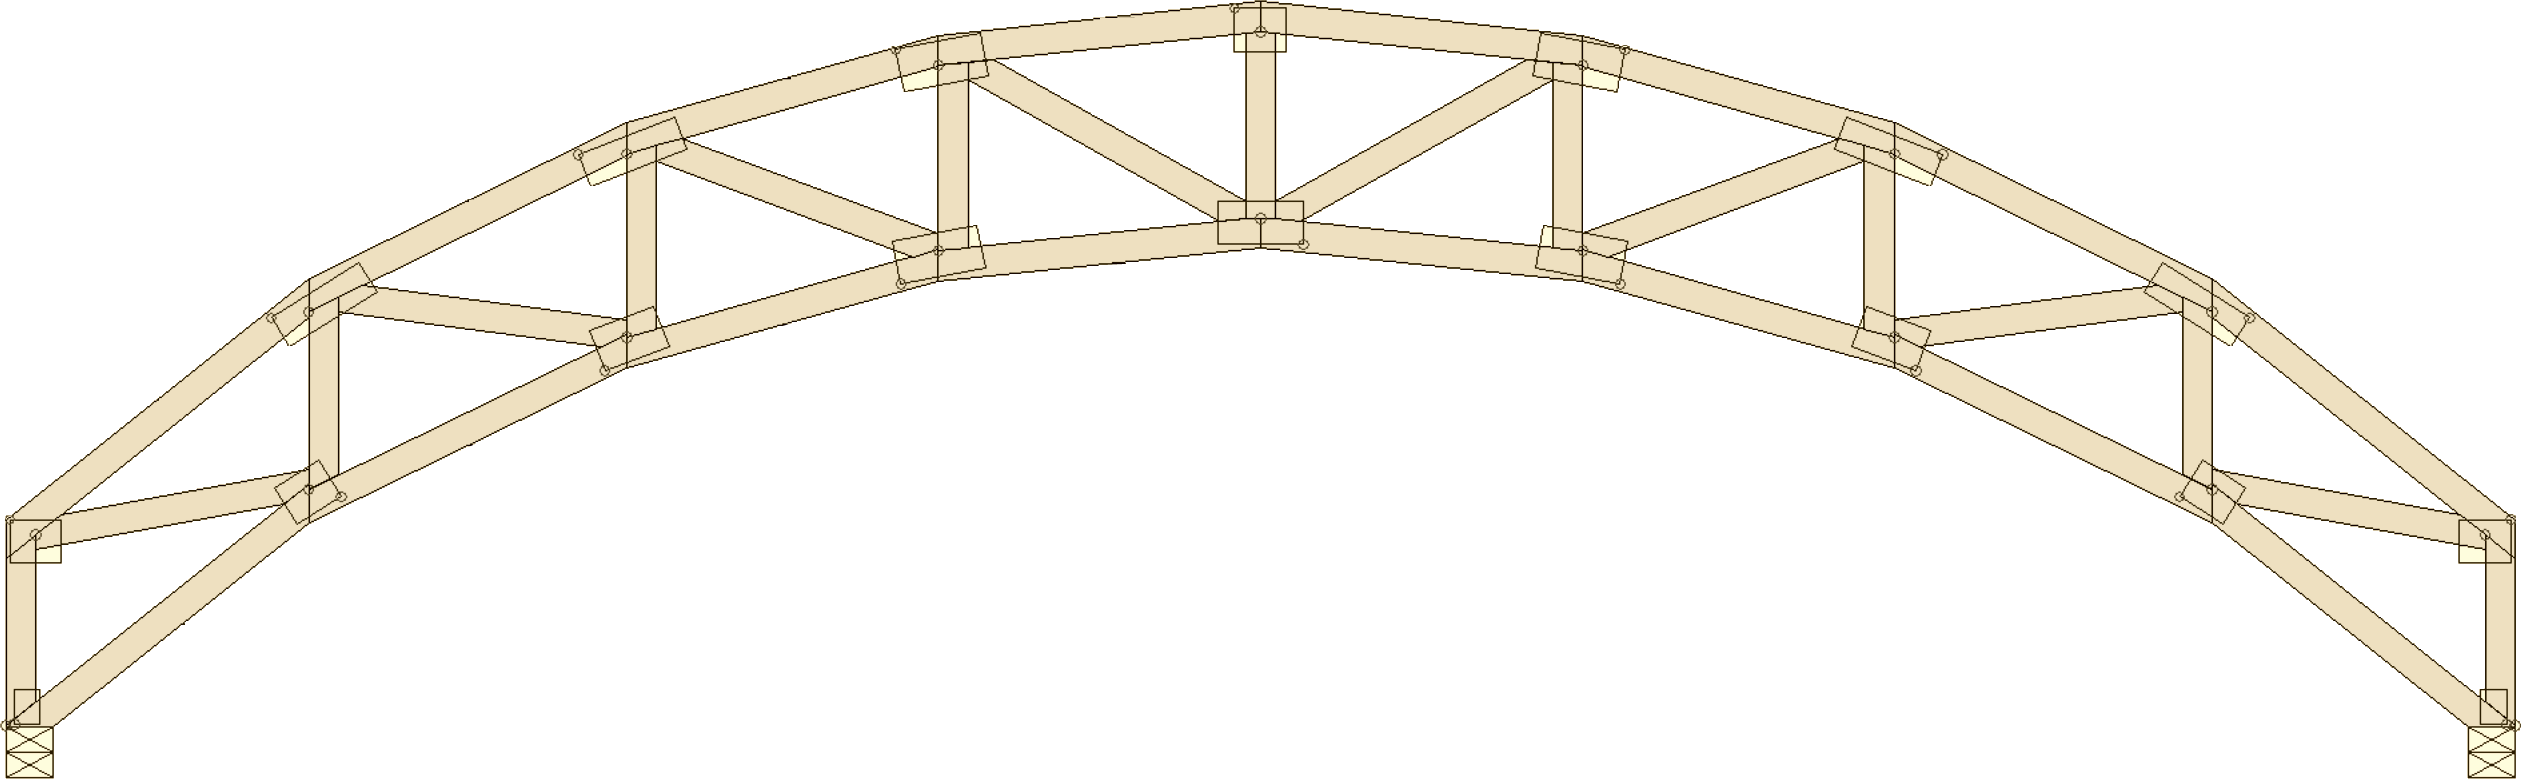 Truss Types on Gothic Arch Greenhouse Plans